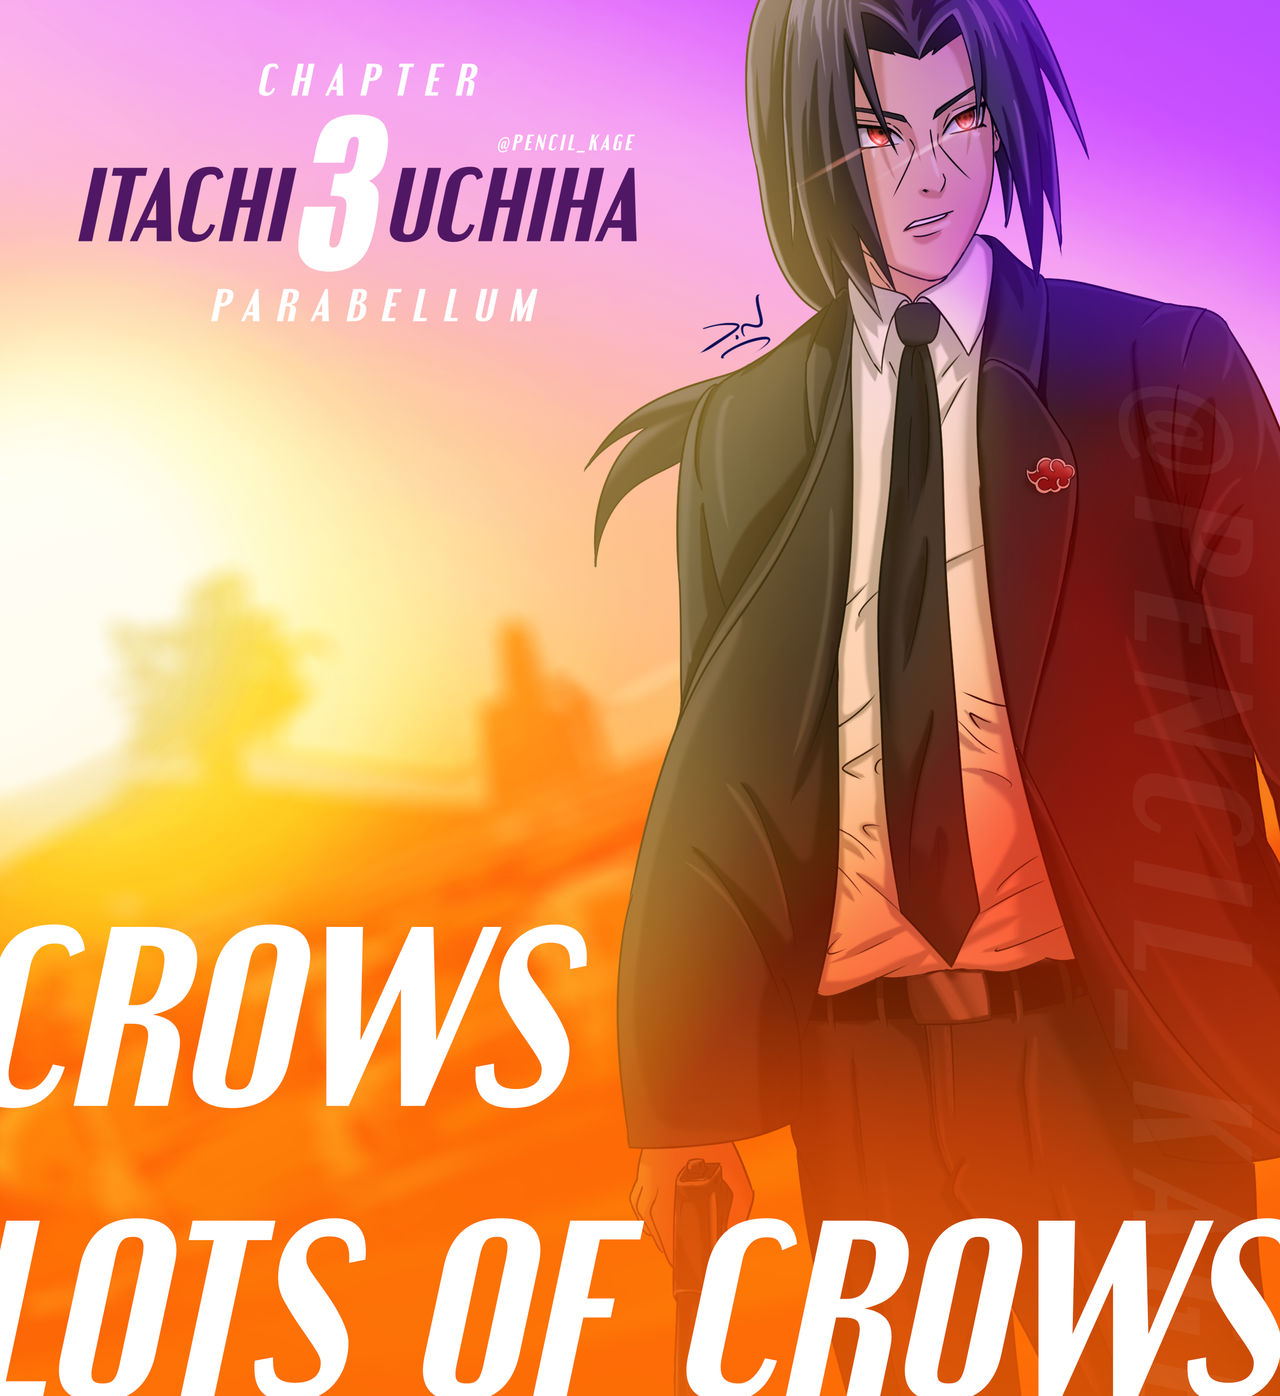 Crows Lots Of Crows Itachi John Wick By Pencilkage On Deviantart